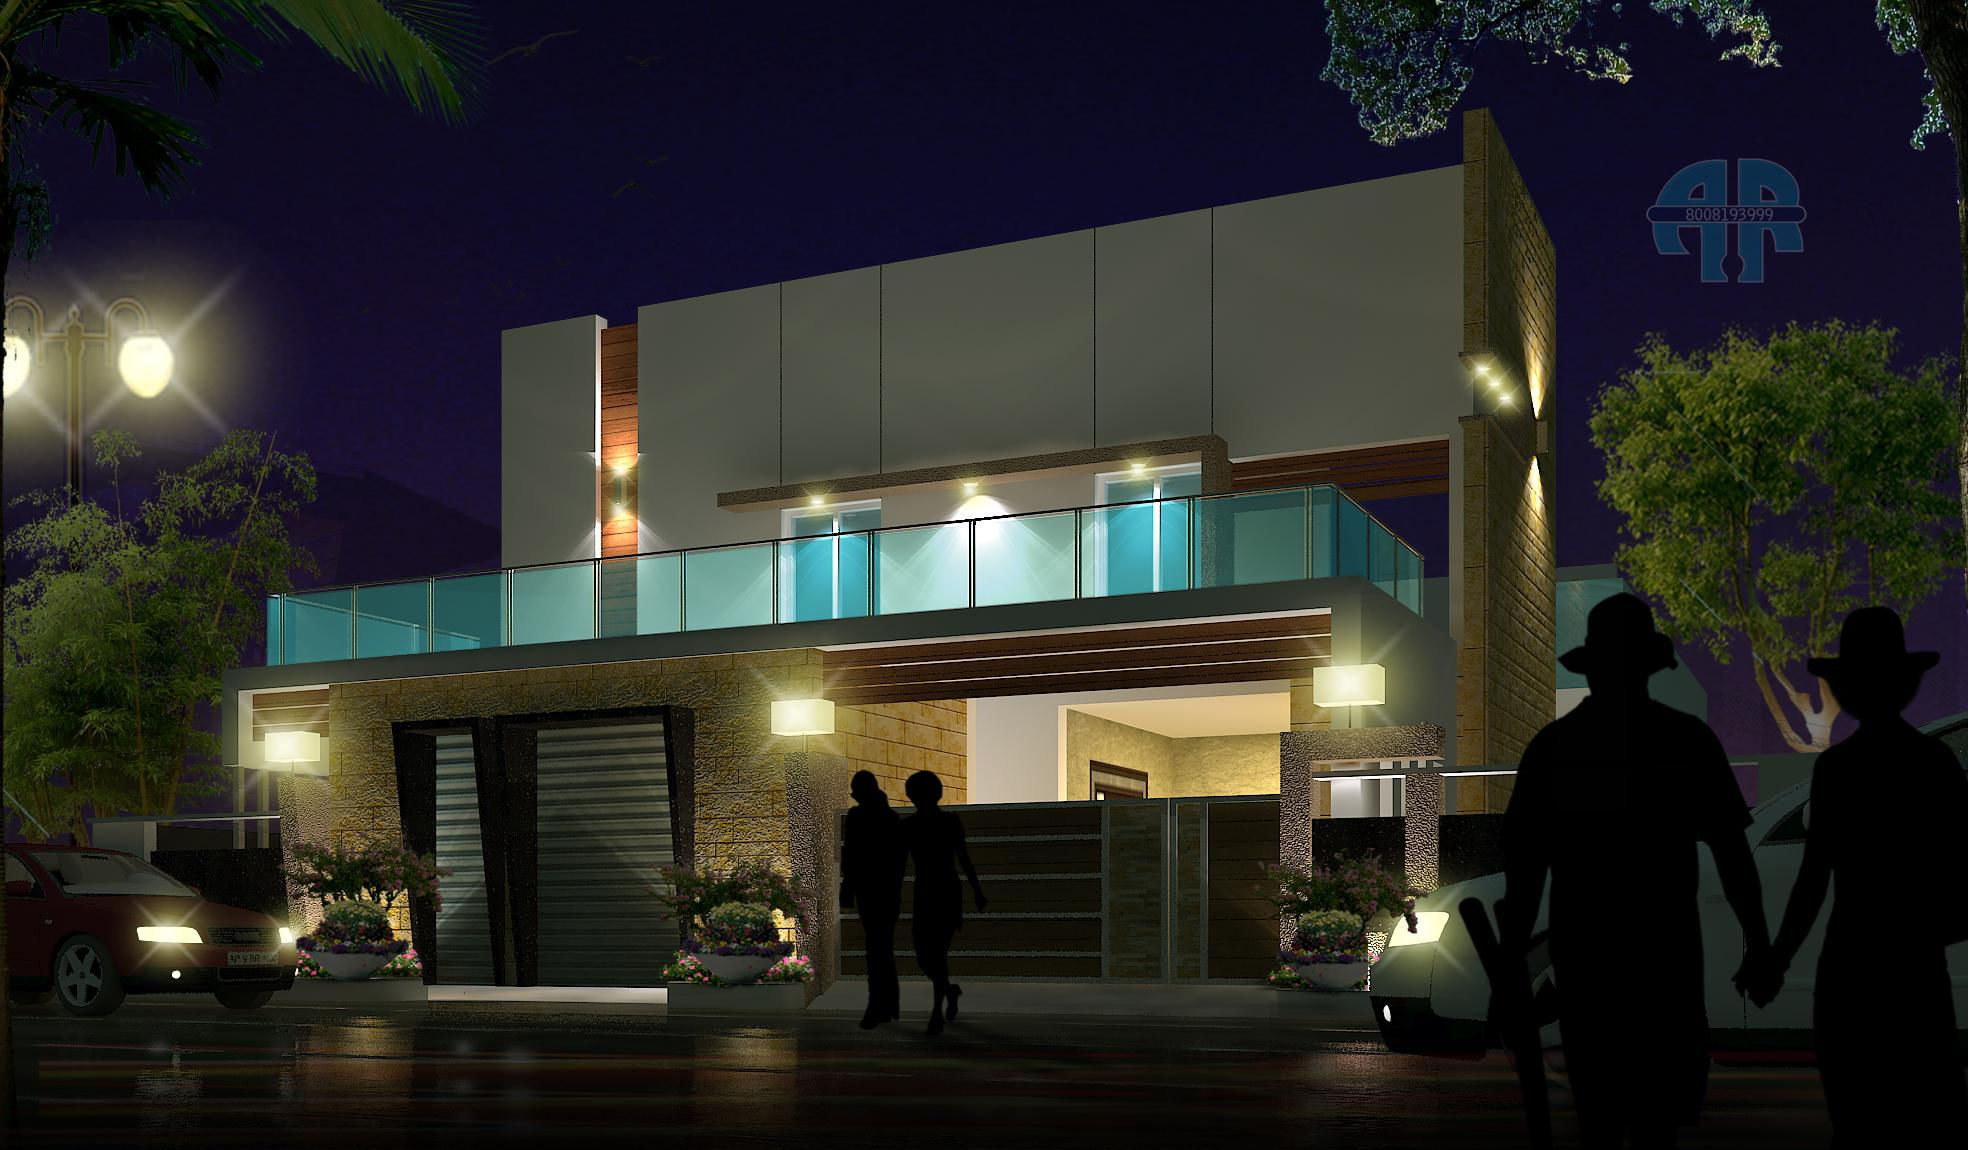 ar-concepts-madhinaguda-hyderabad-residential-elevation-night-view-image